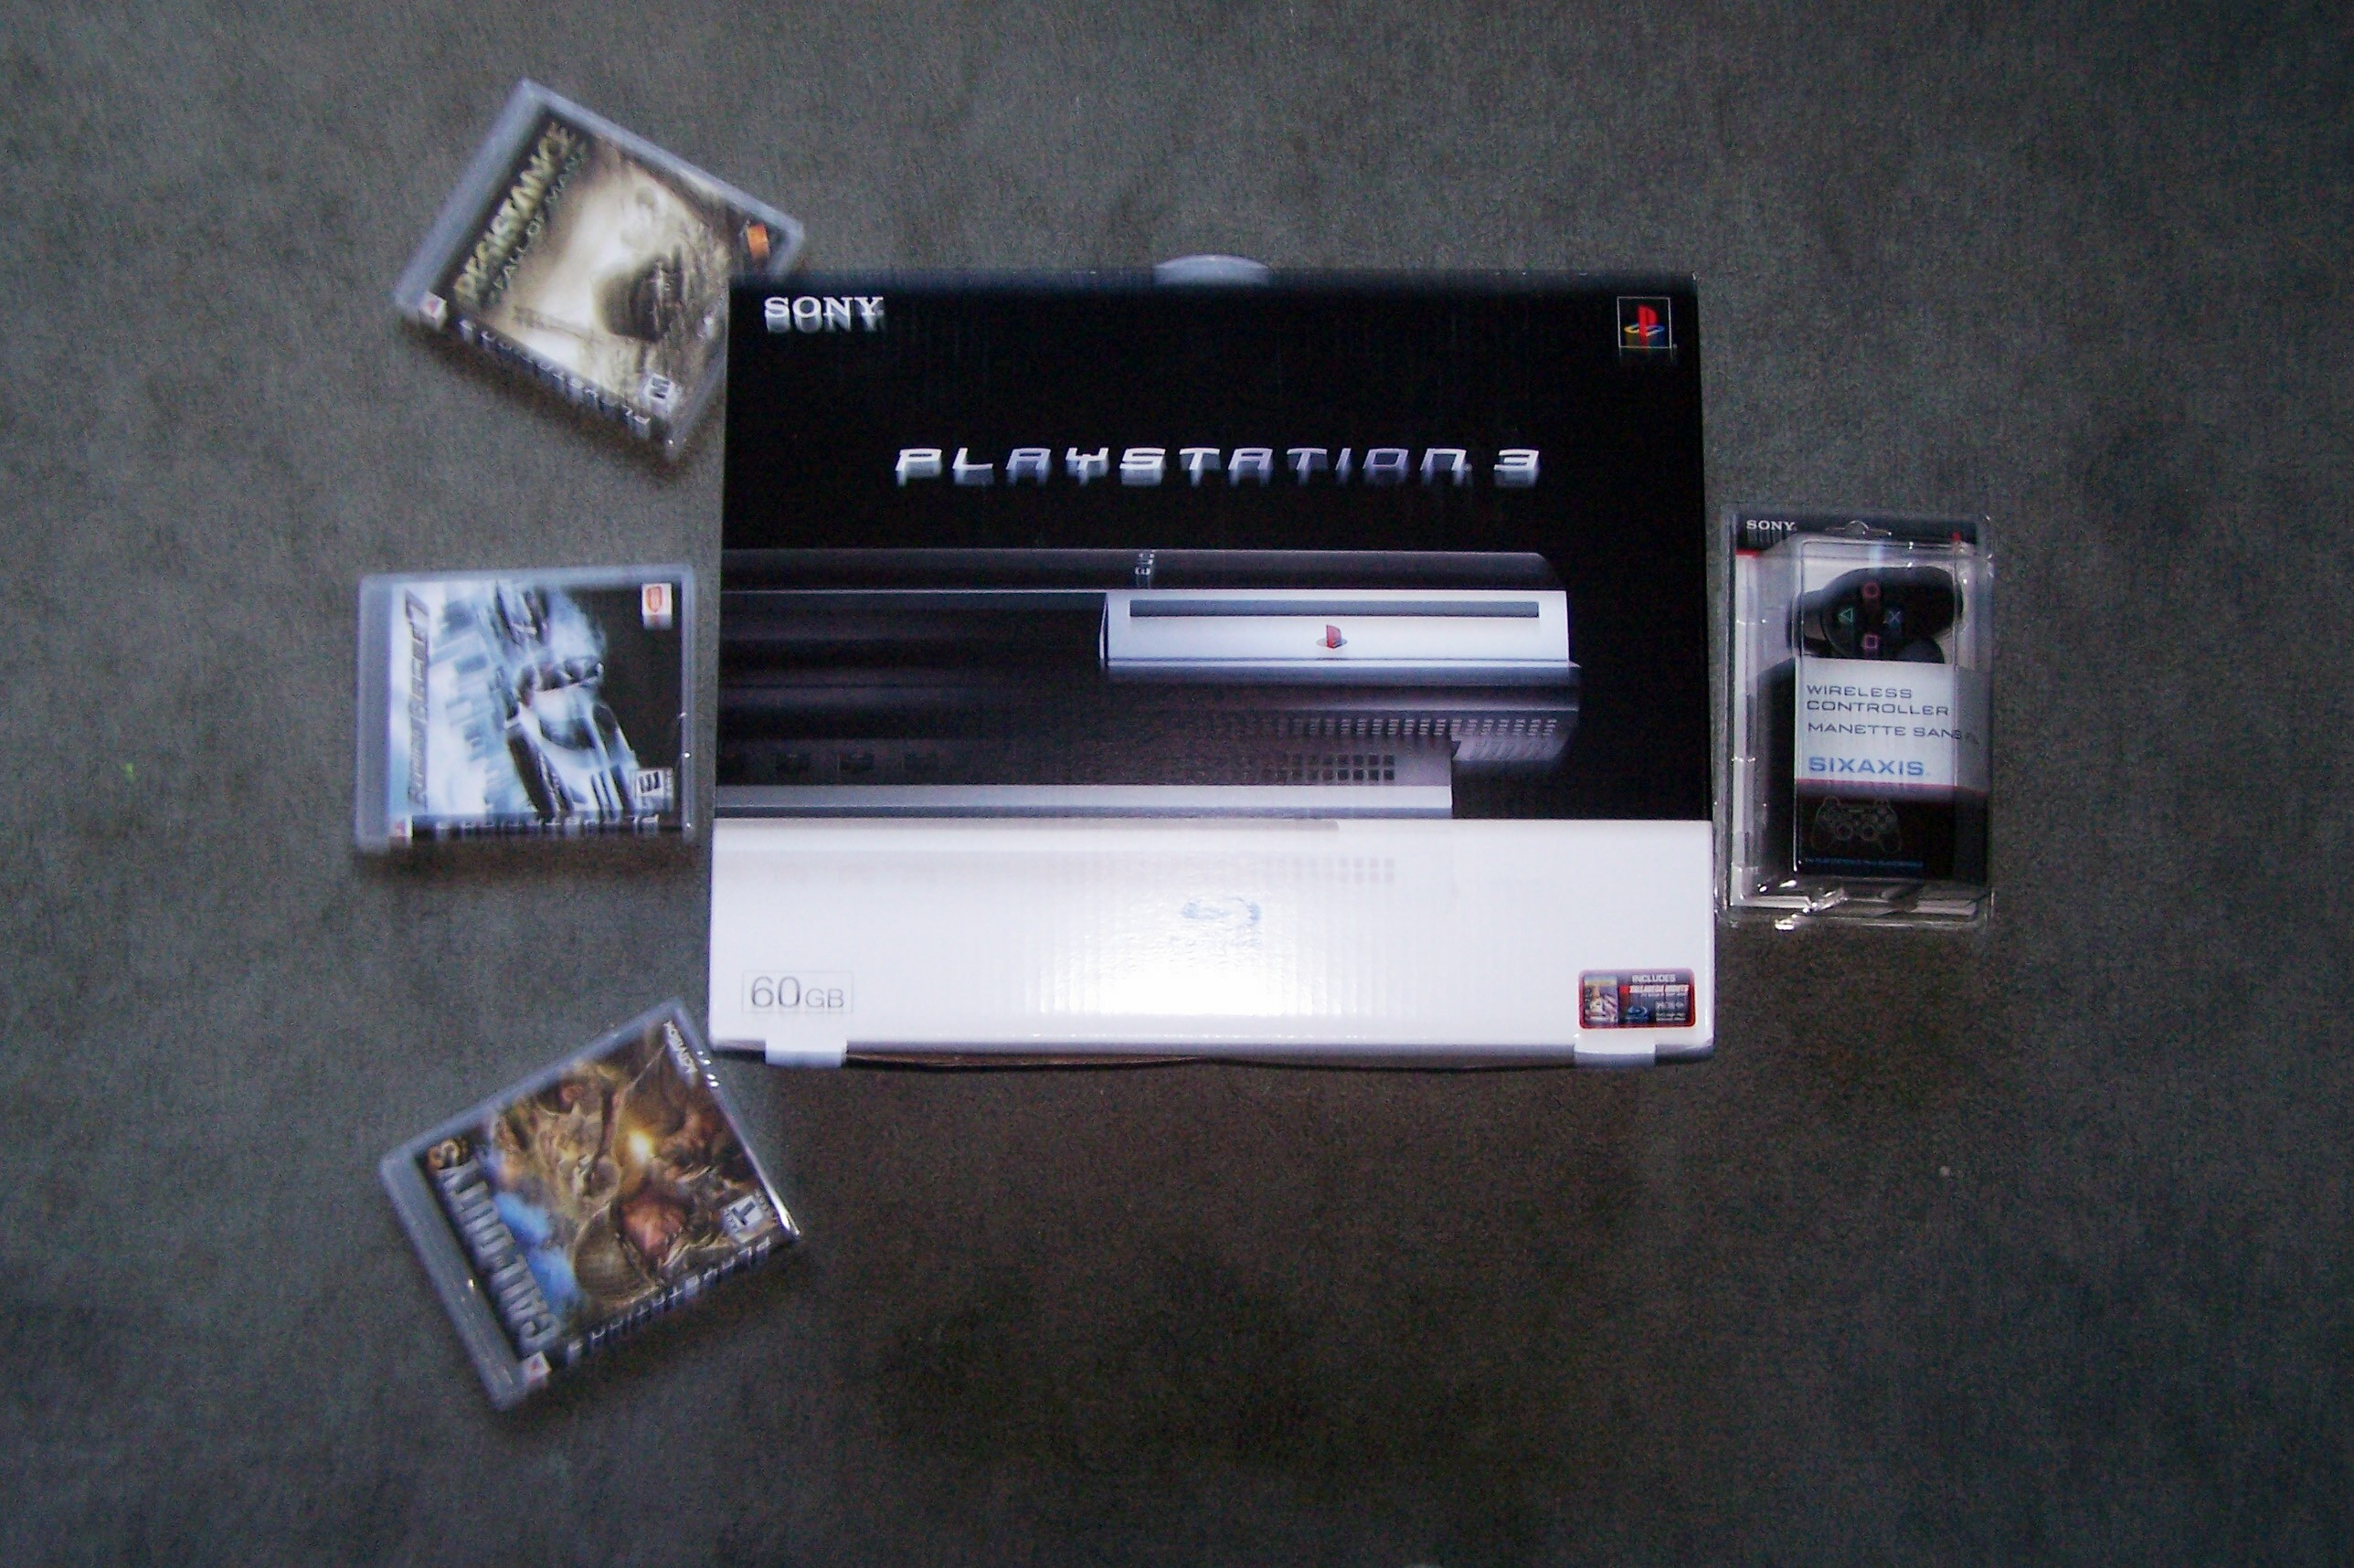 Photos: PS3 Pictures - 03784